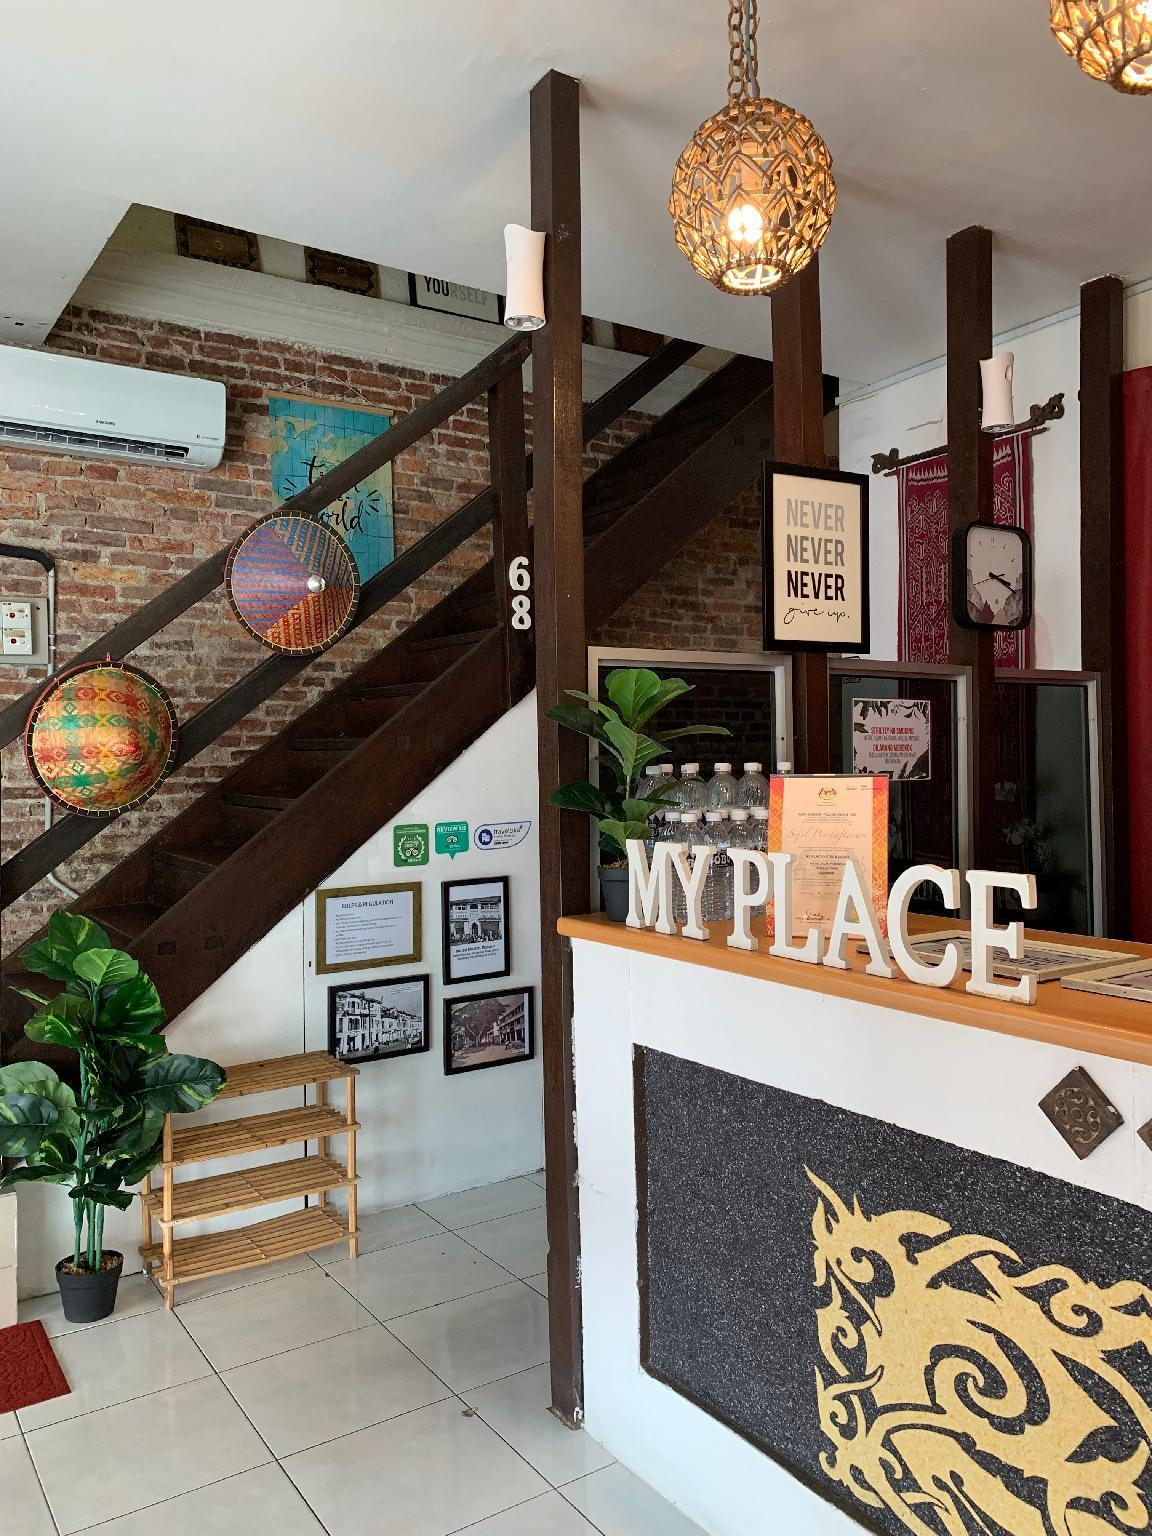 My Place Hotel & Lodge